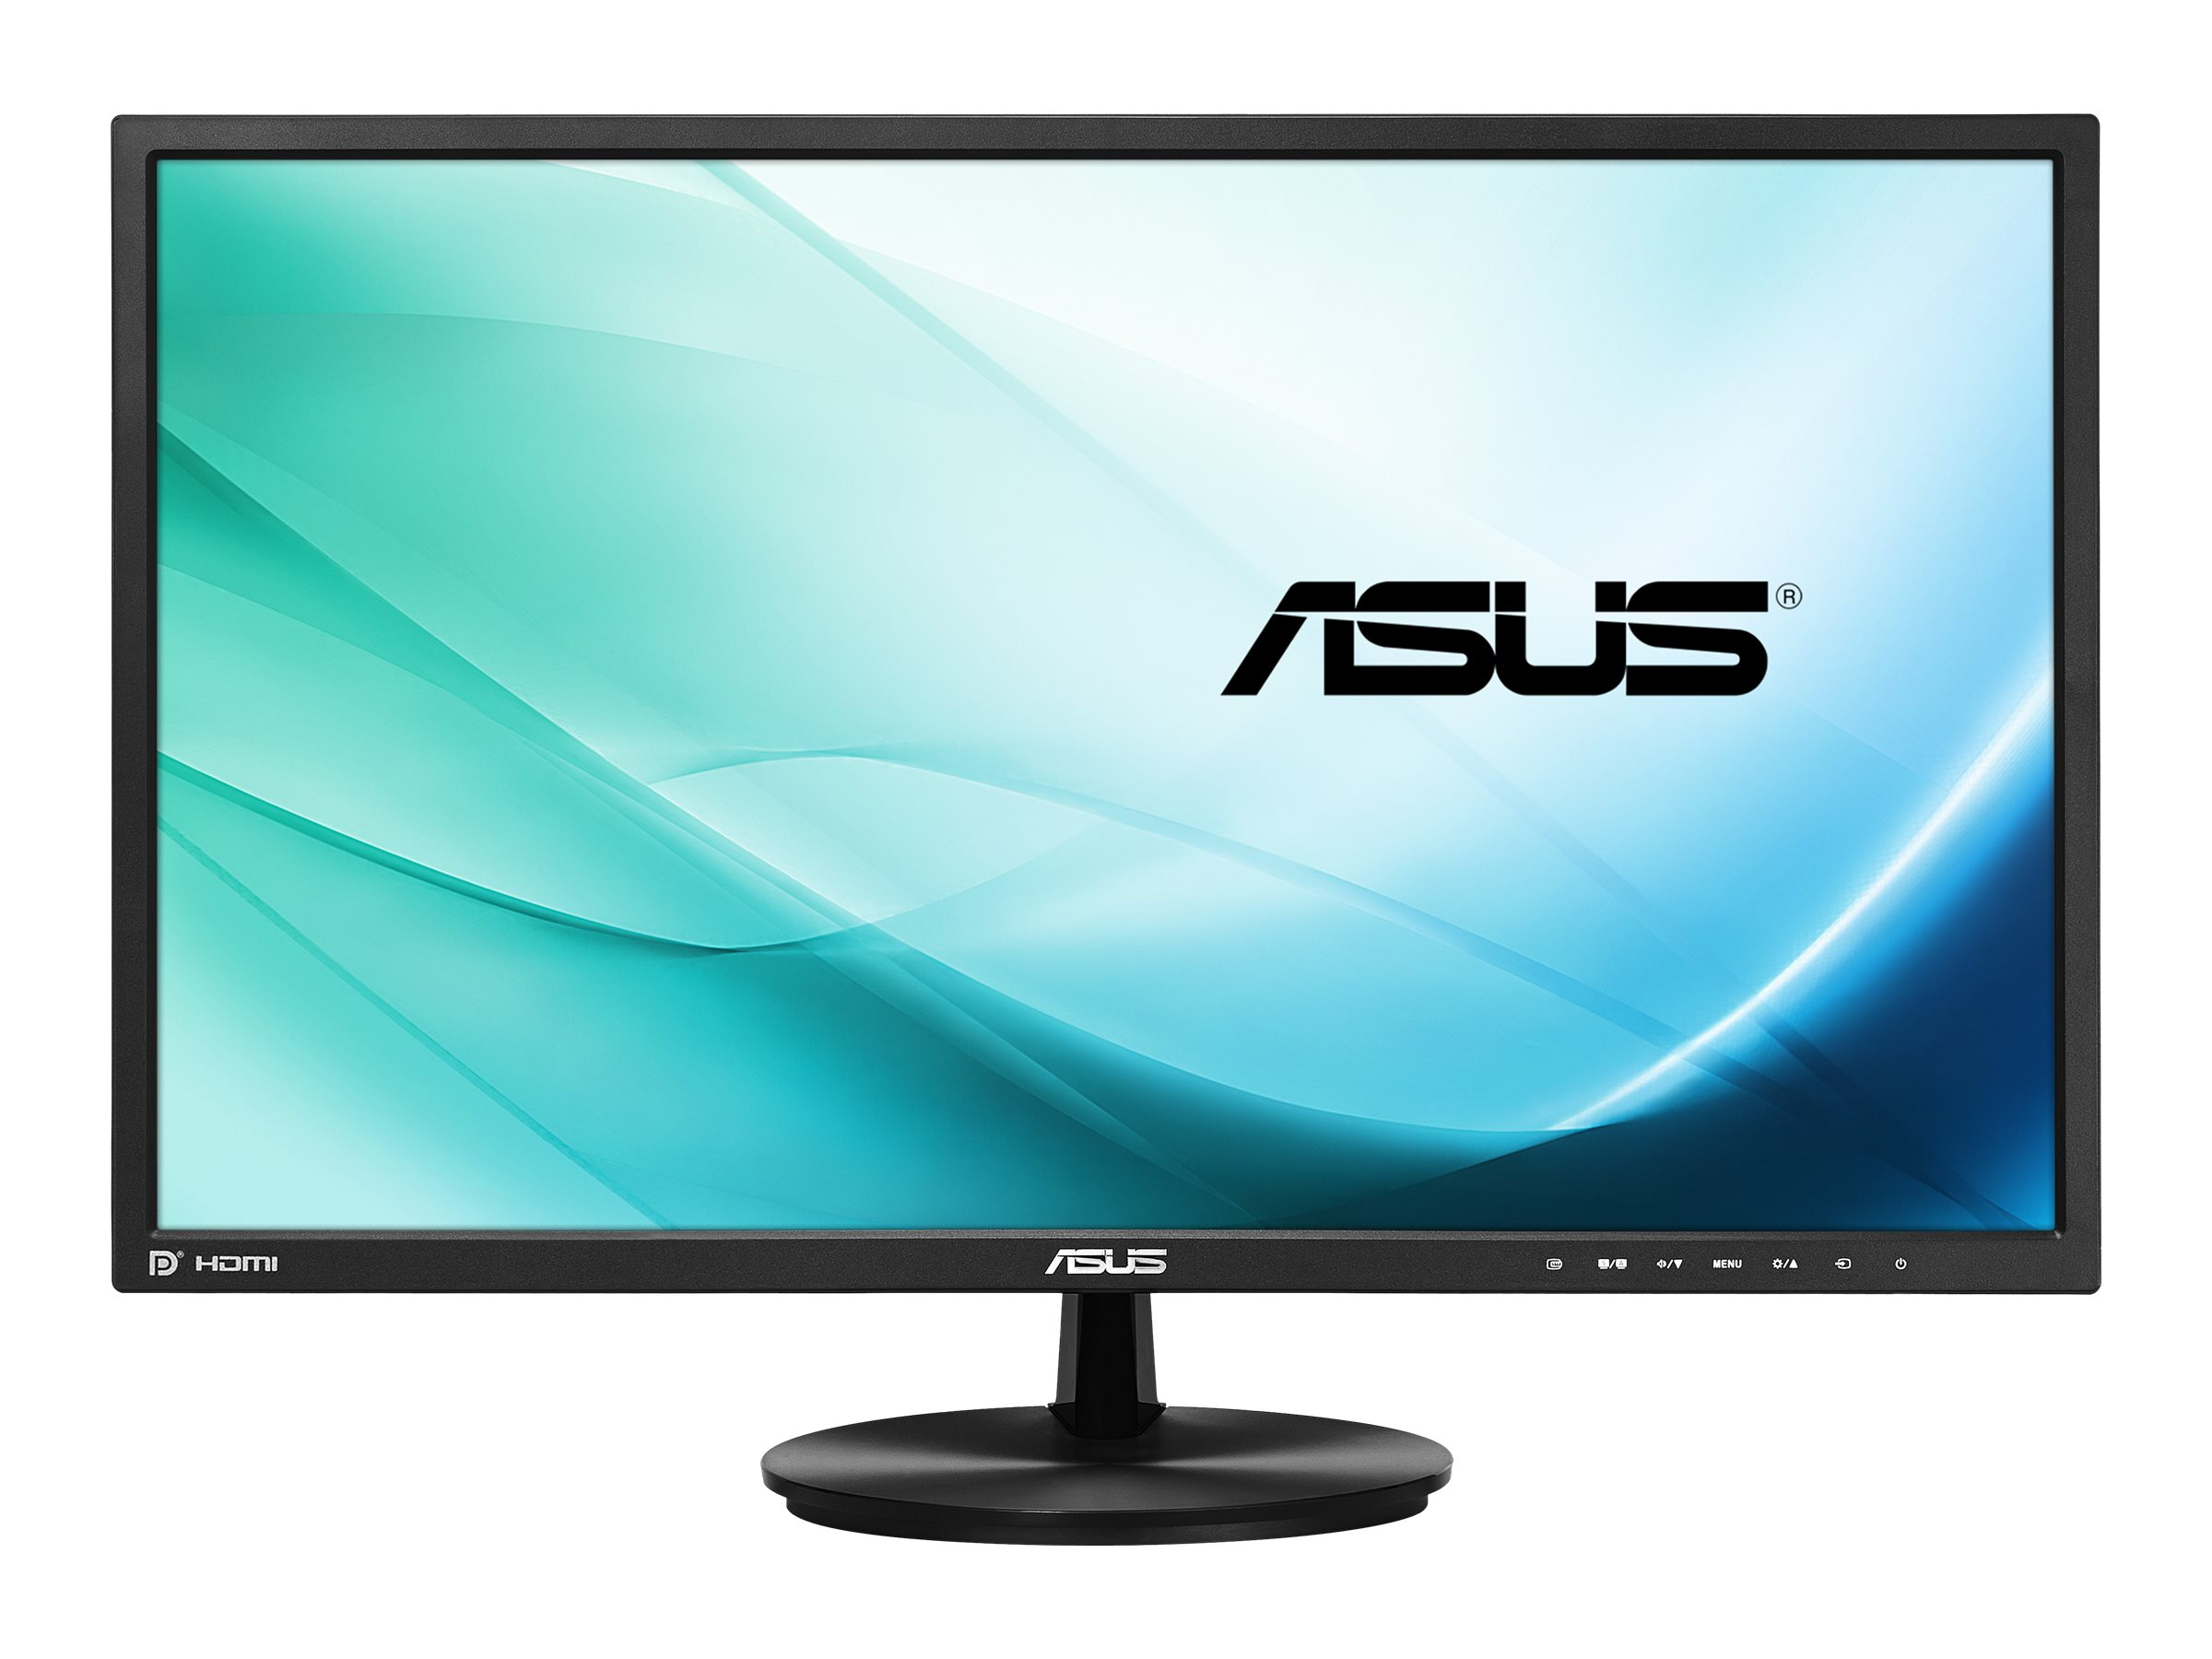 Asus 23.8 VN248Q-P Full HD LED-LCD Monitor, Black